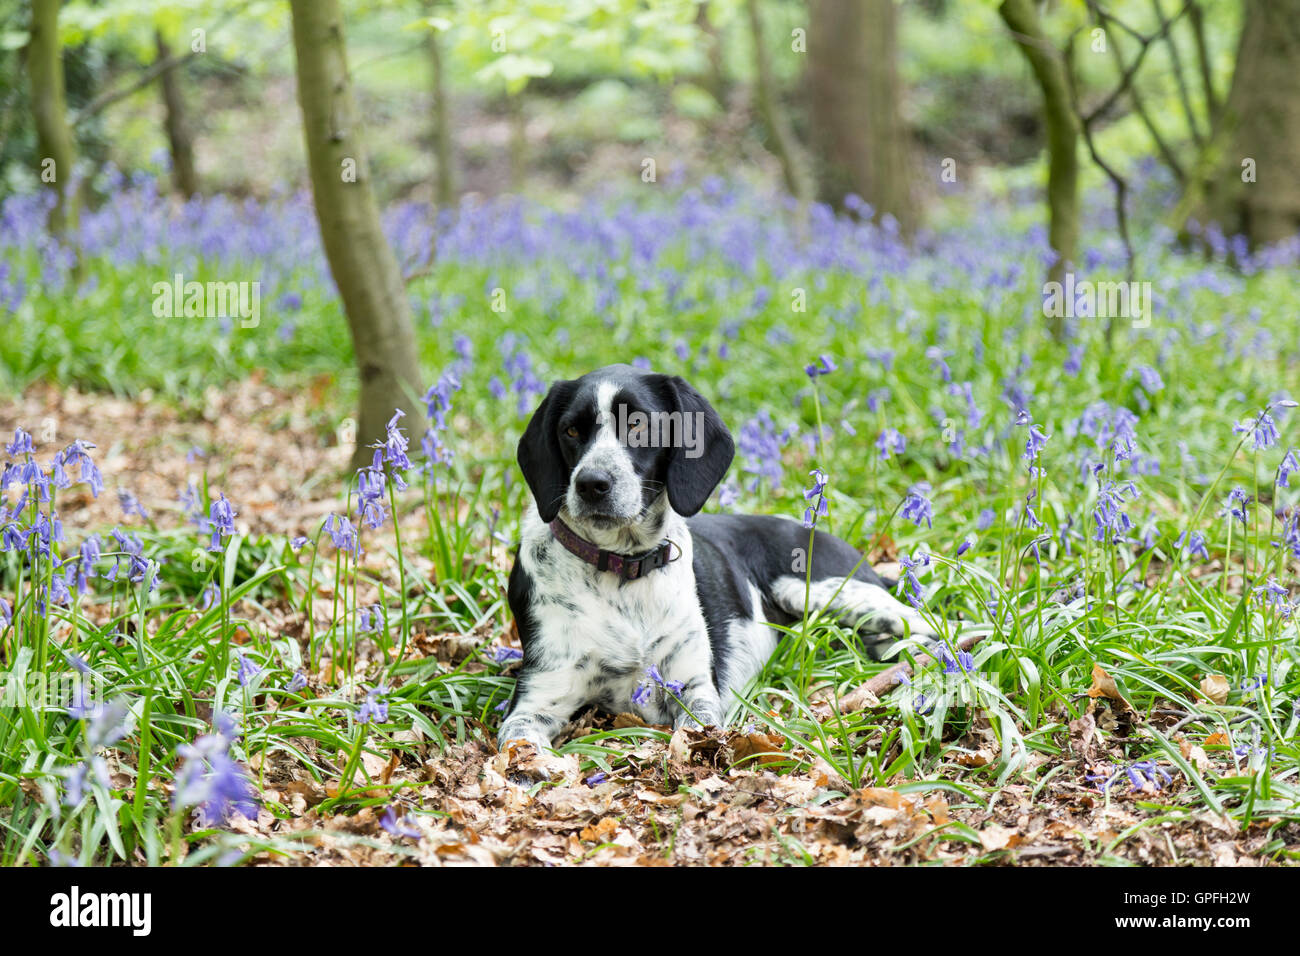 Black and white dog lay in a bluebell filled wood - pet portrait. - Stock Image